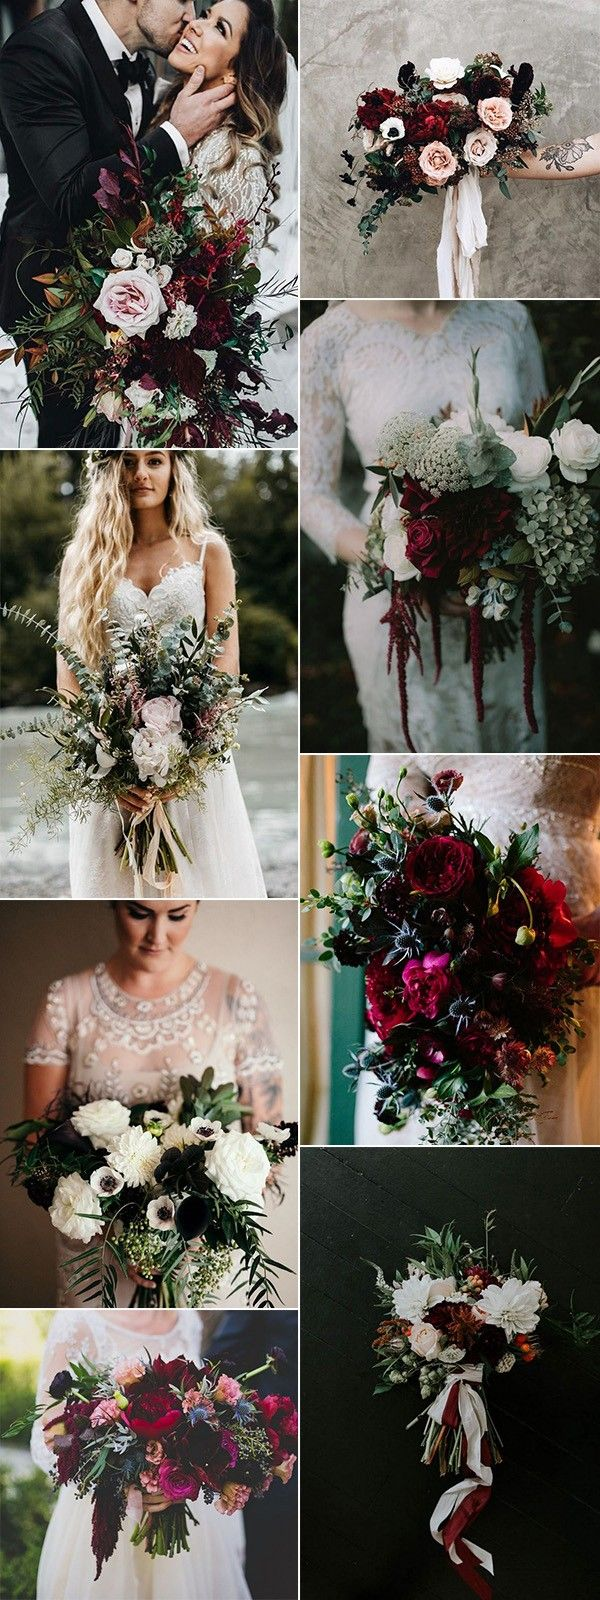 Wedding decorations theme october 2018 Top  Moody Wedding Bouquets for  Trends  Page  of   flores